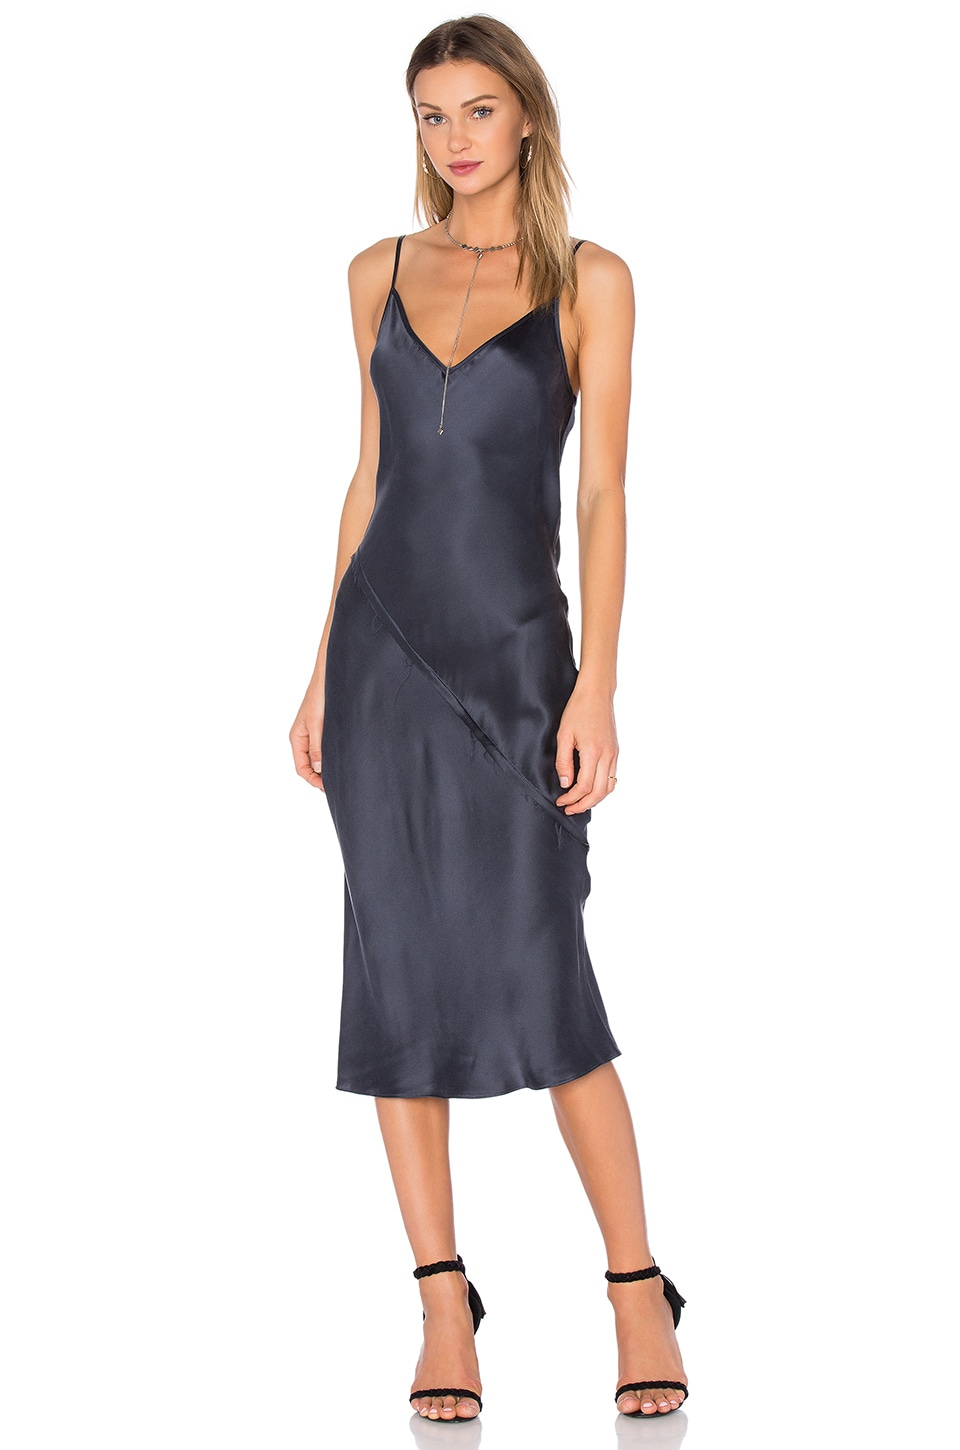 KES Bias Slip Dress in Midnight